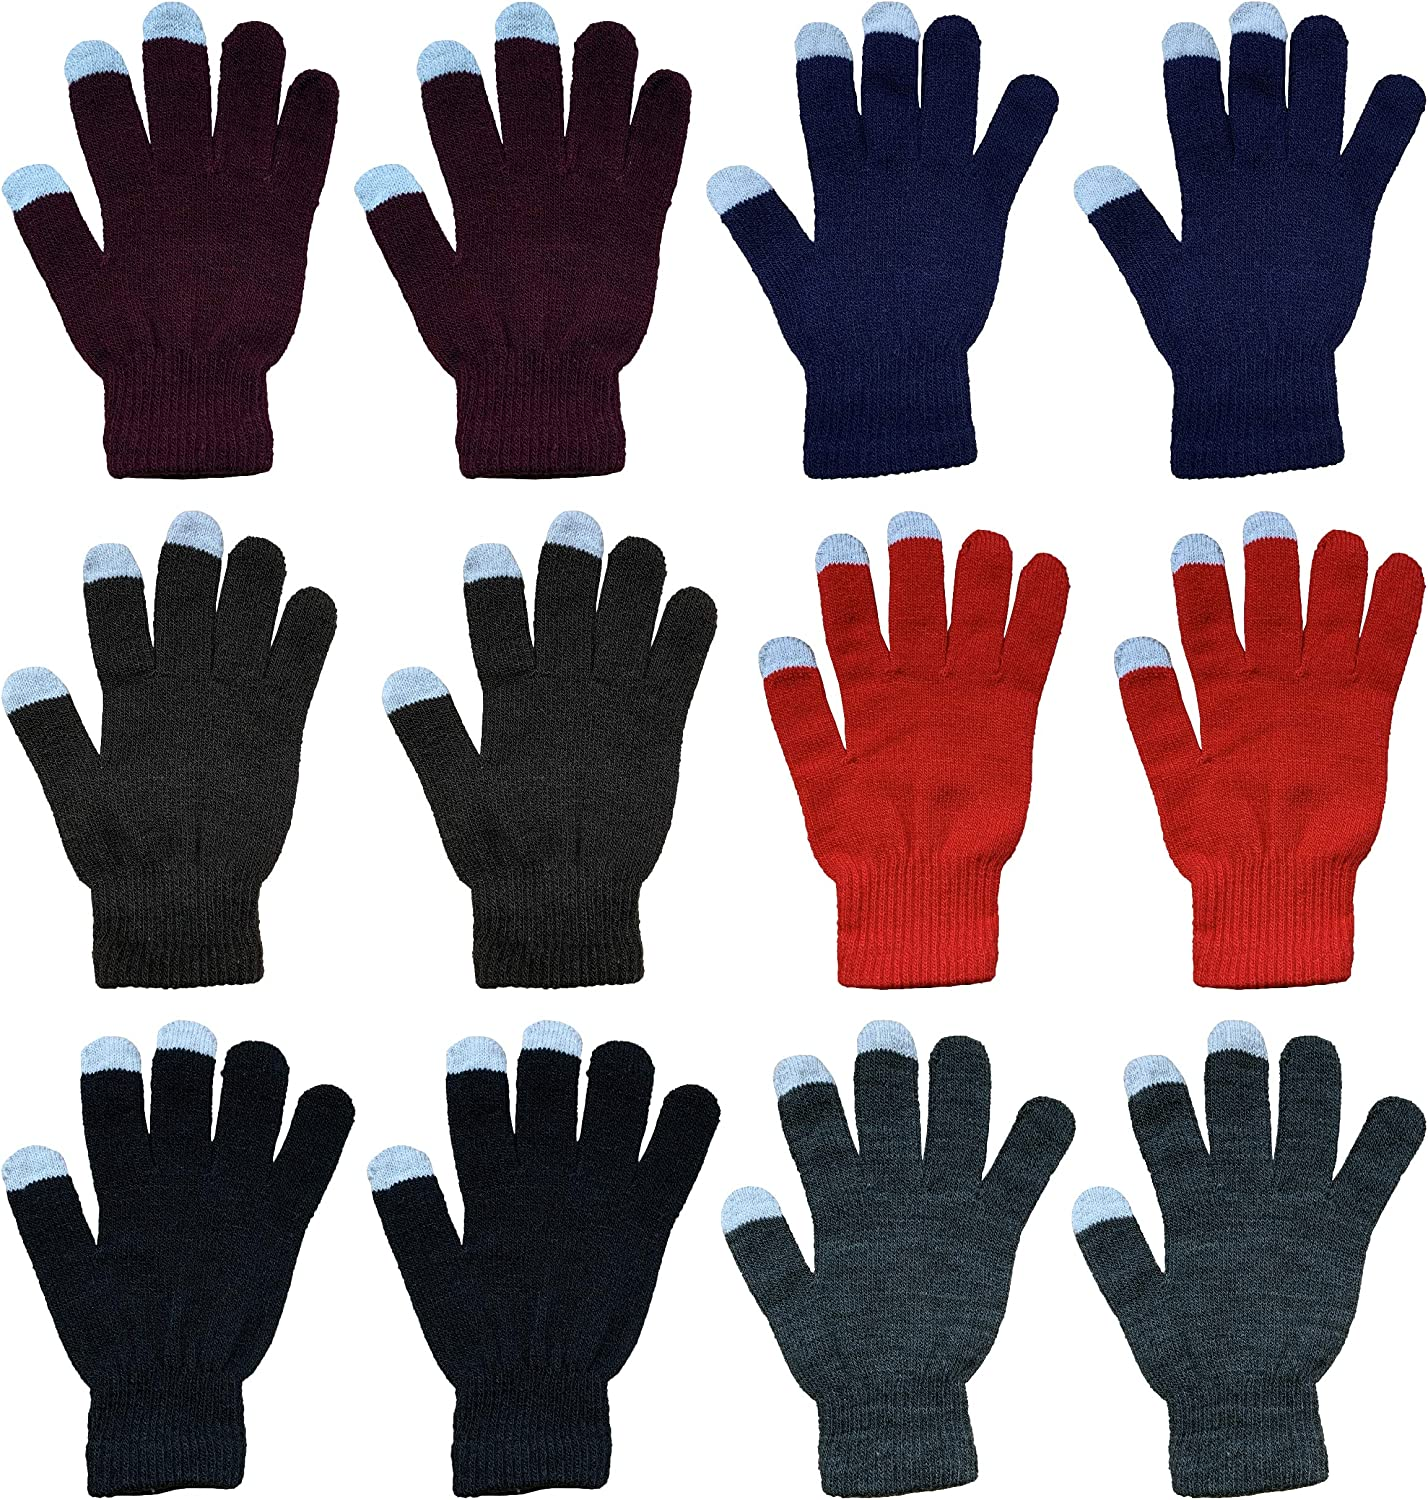 12pairs Boys Girl Children Kids Assorted Colors Warm Winter Magic Gloves Thermal